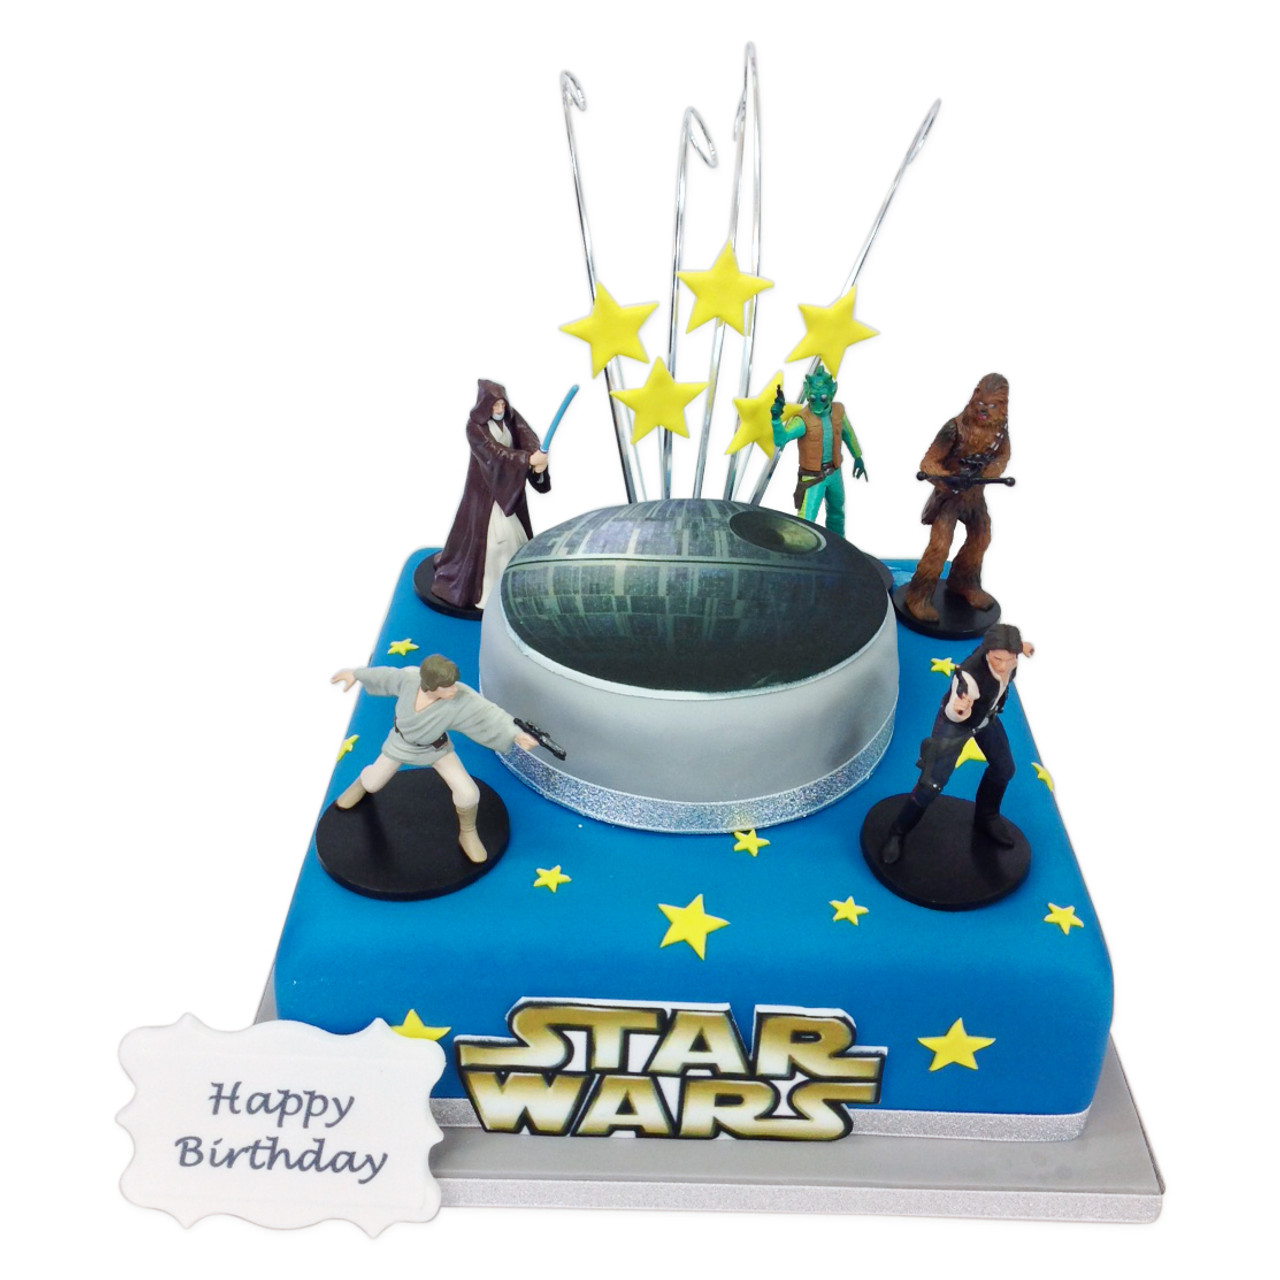 Star Wars Birthday Two Tier Cake The Cake Store